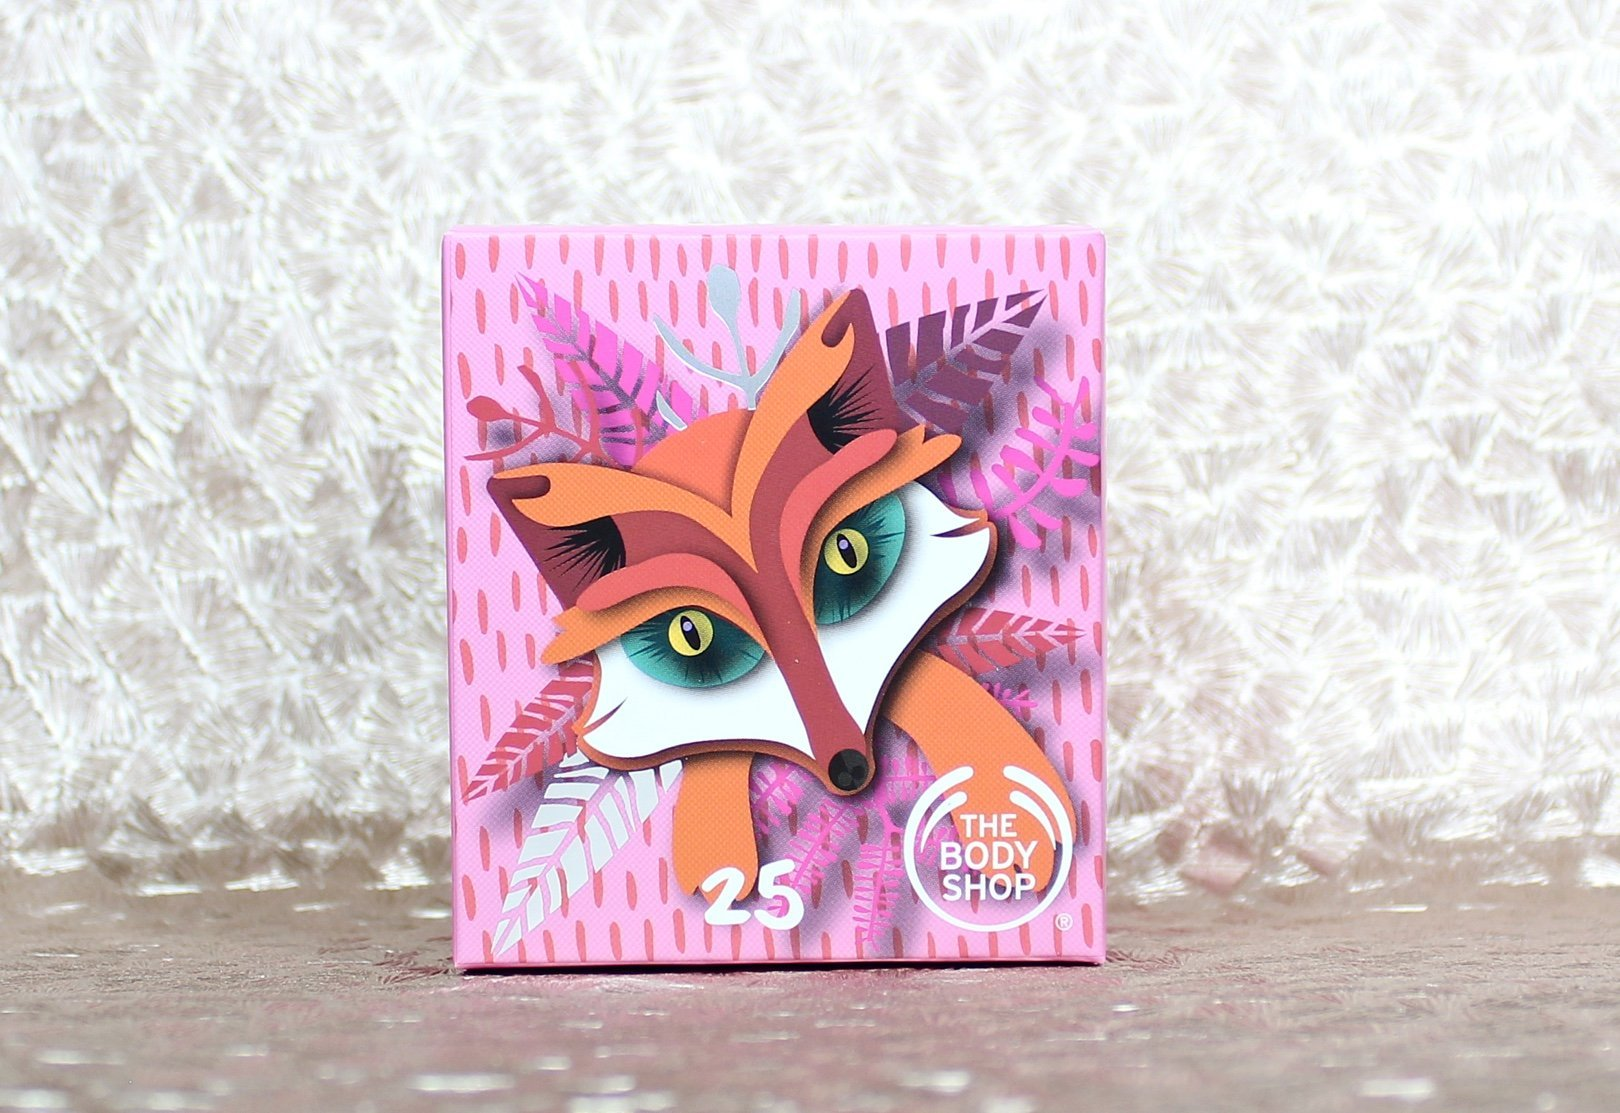 The Body Shop 25 Days of Enchanted Deluxe Advent Calendar • Days 25